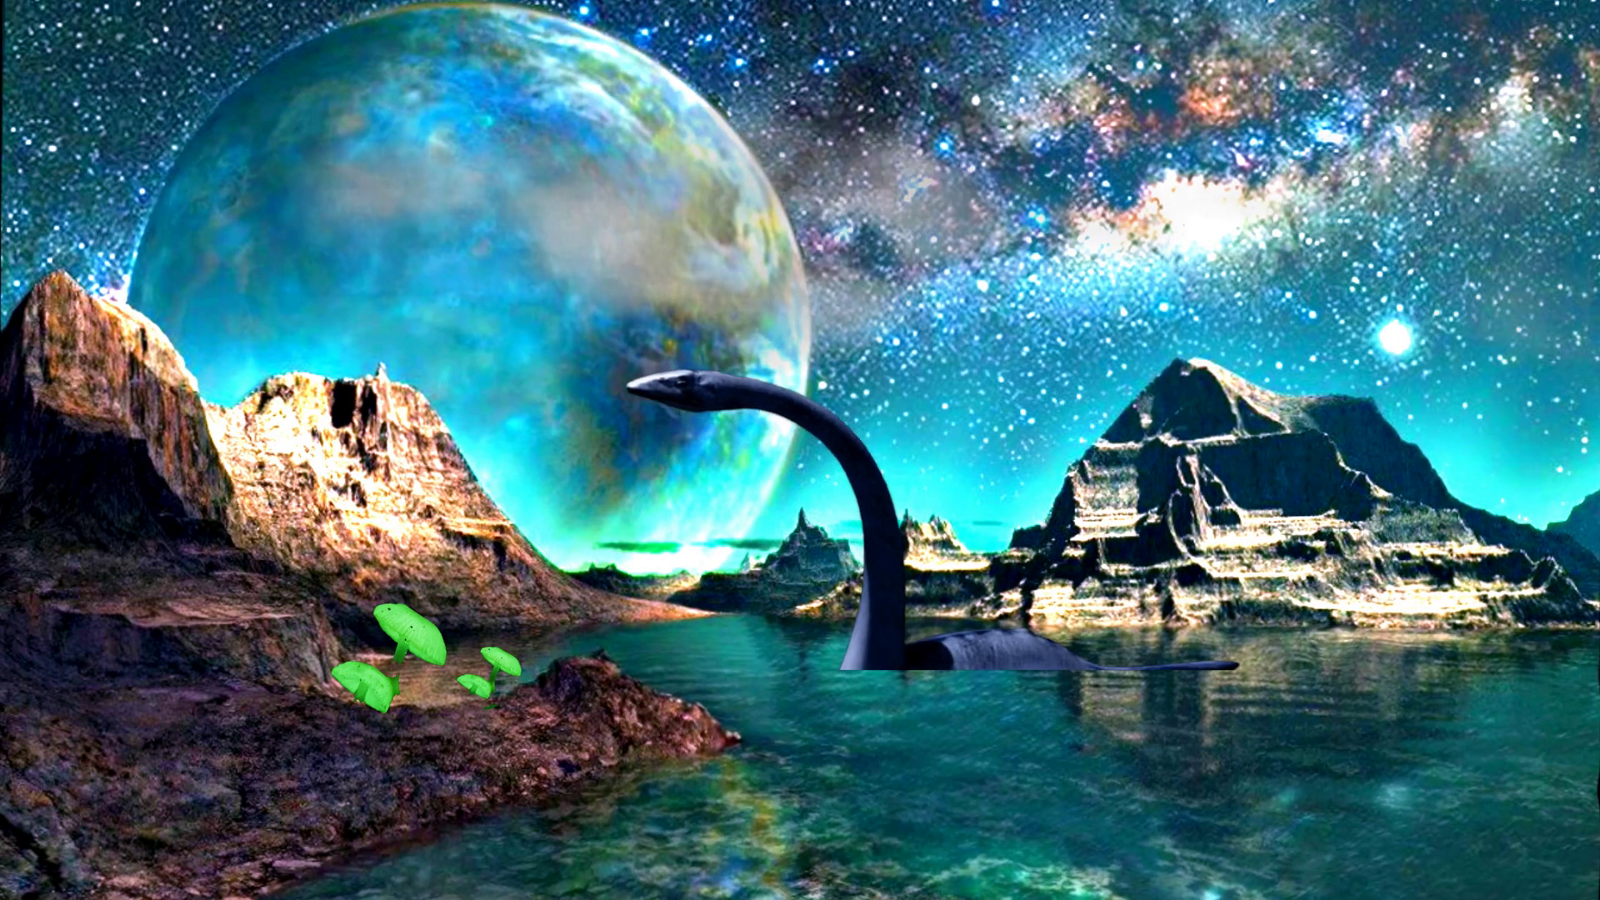 Spacy alternative planet with something like the loch ness monster out of the water